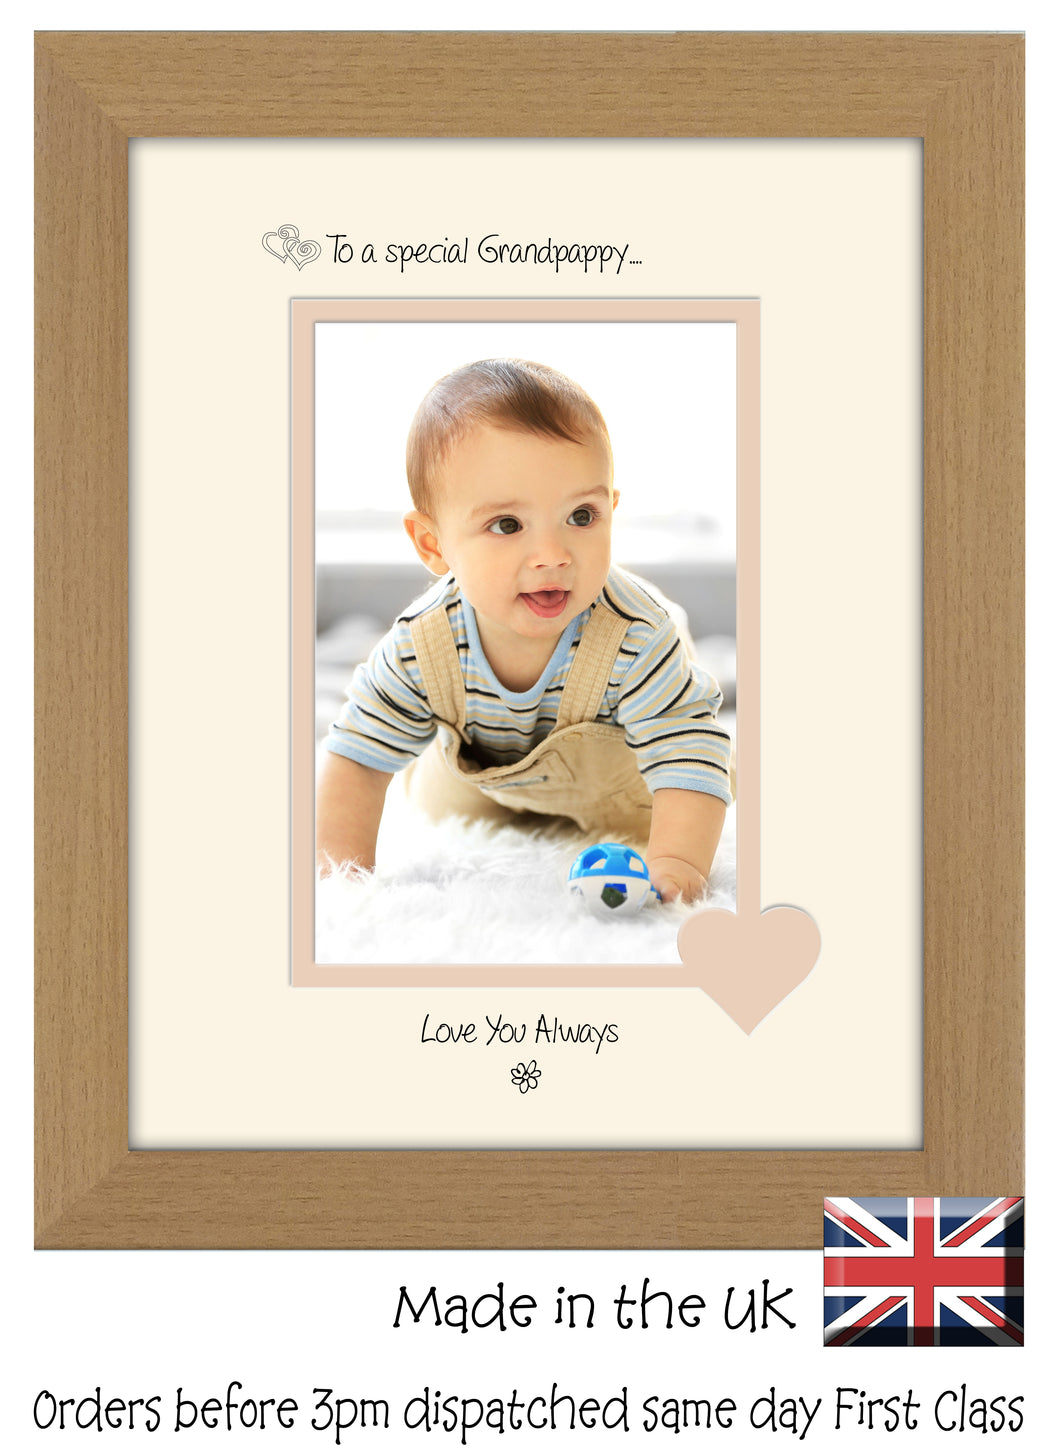 Grandpappy Photo Frame - To a Special Grandpappy ... Love you Always Portrait photo frame 6